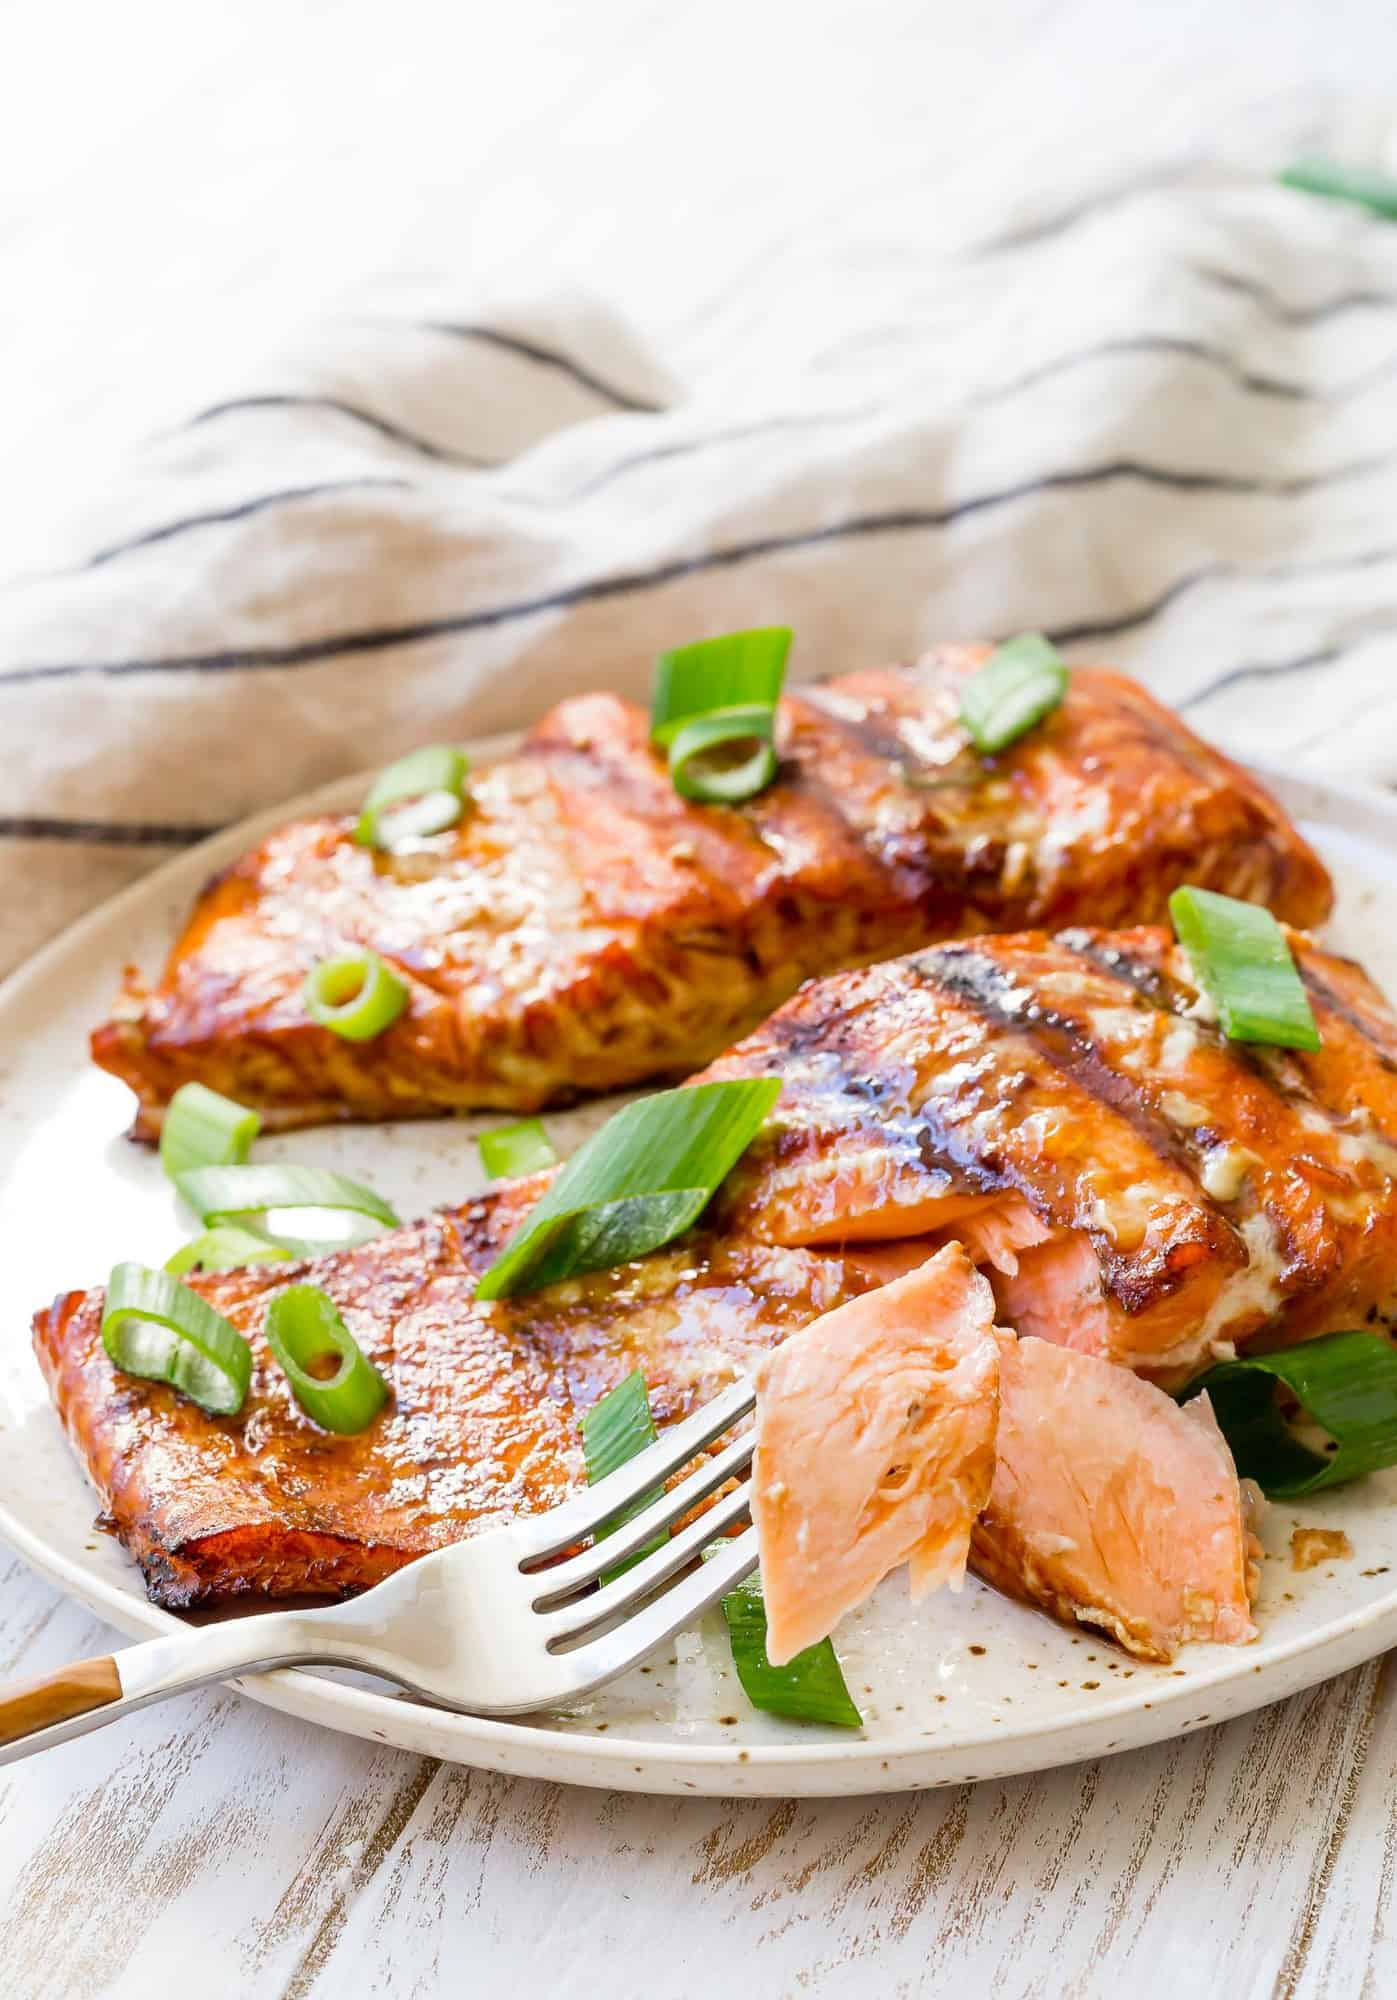 Salmon flaked with a fork to show texture.